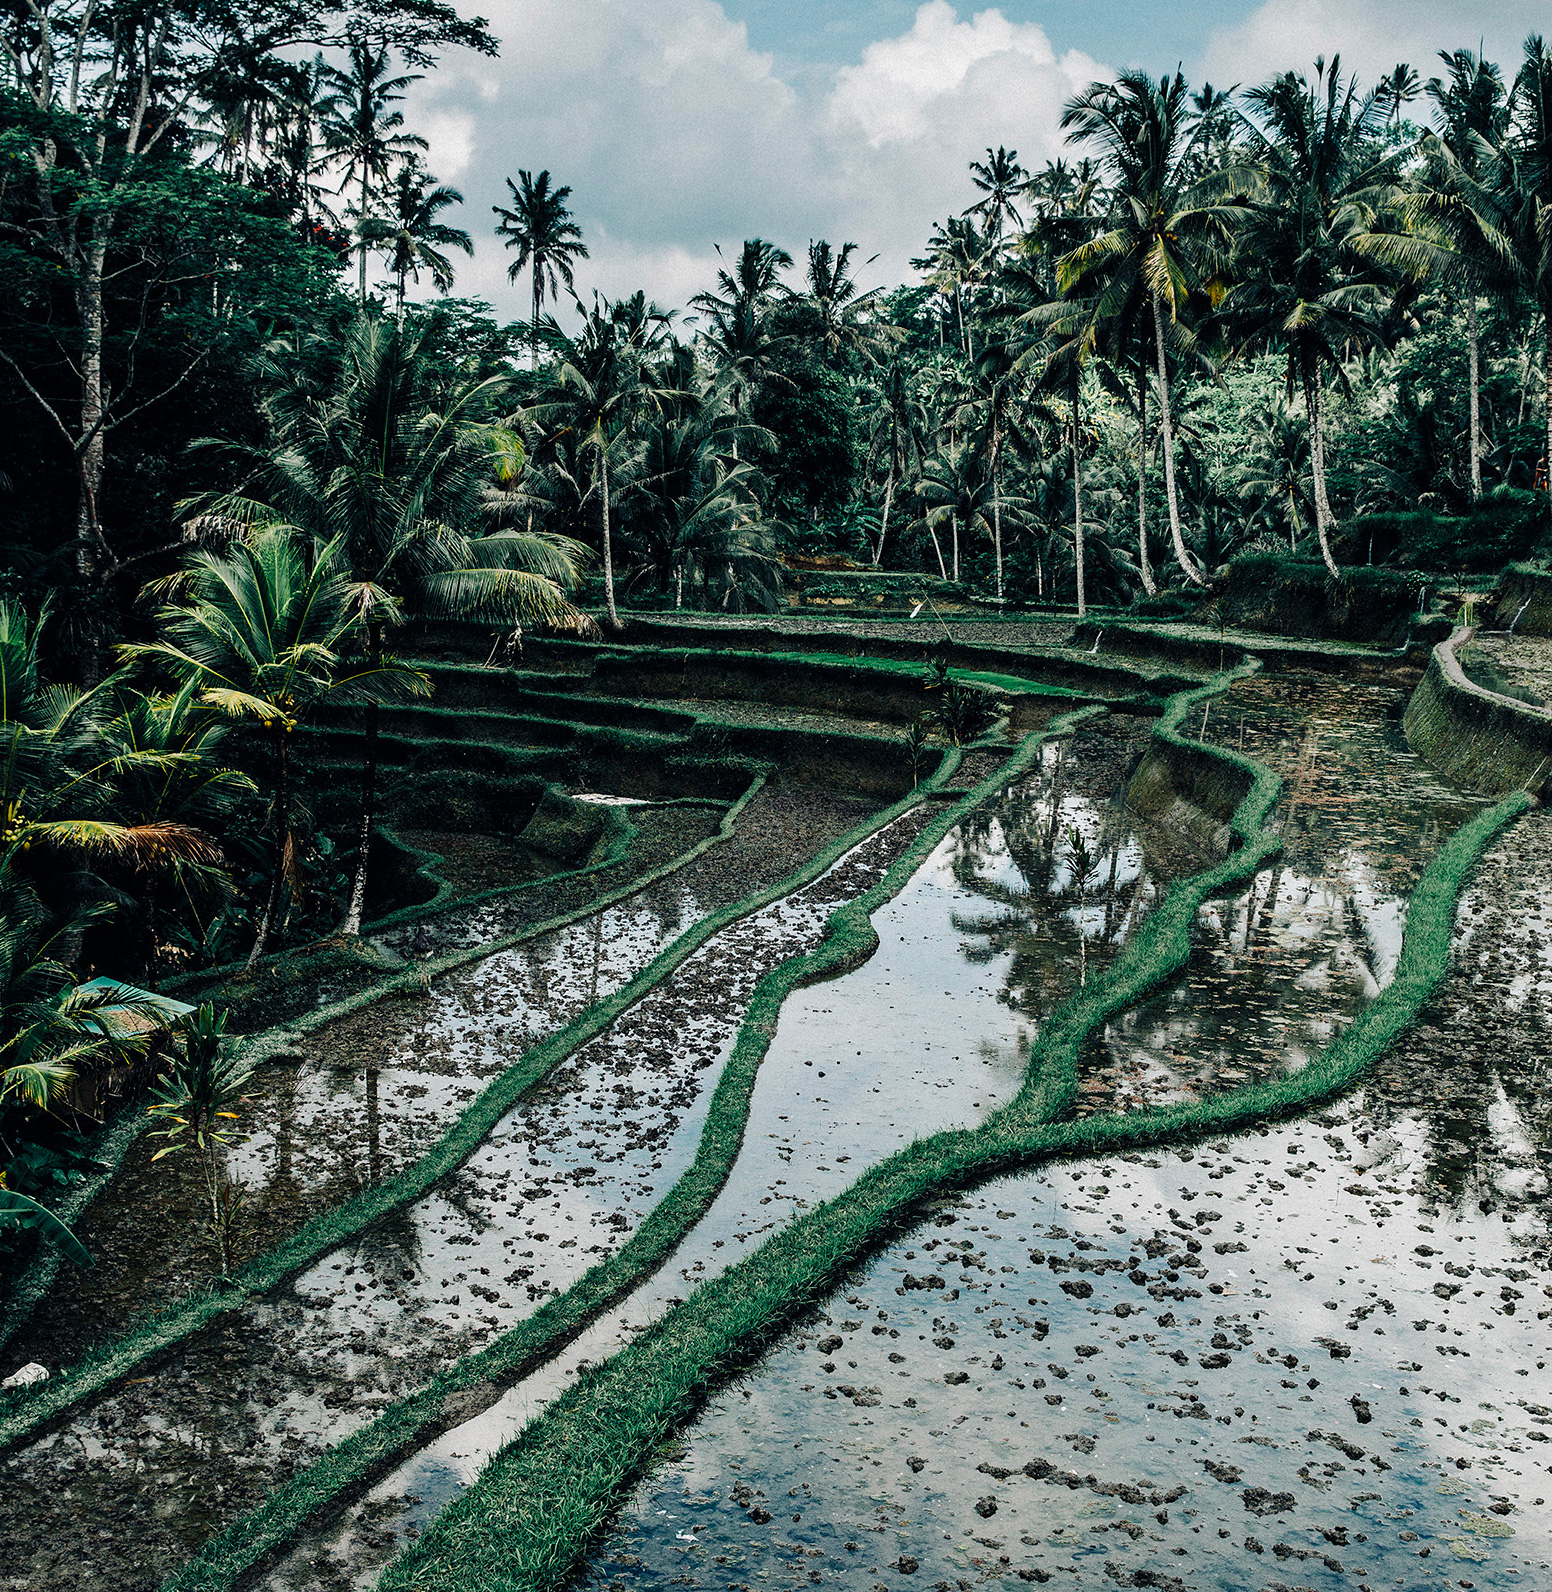 Fantastic Images of a Trip Through Bali (16 pics)